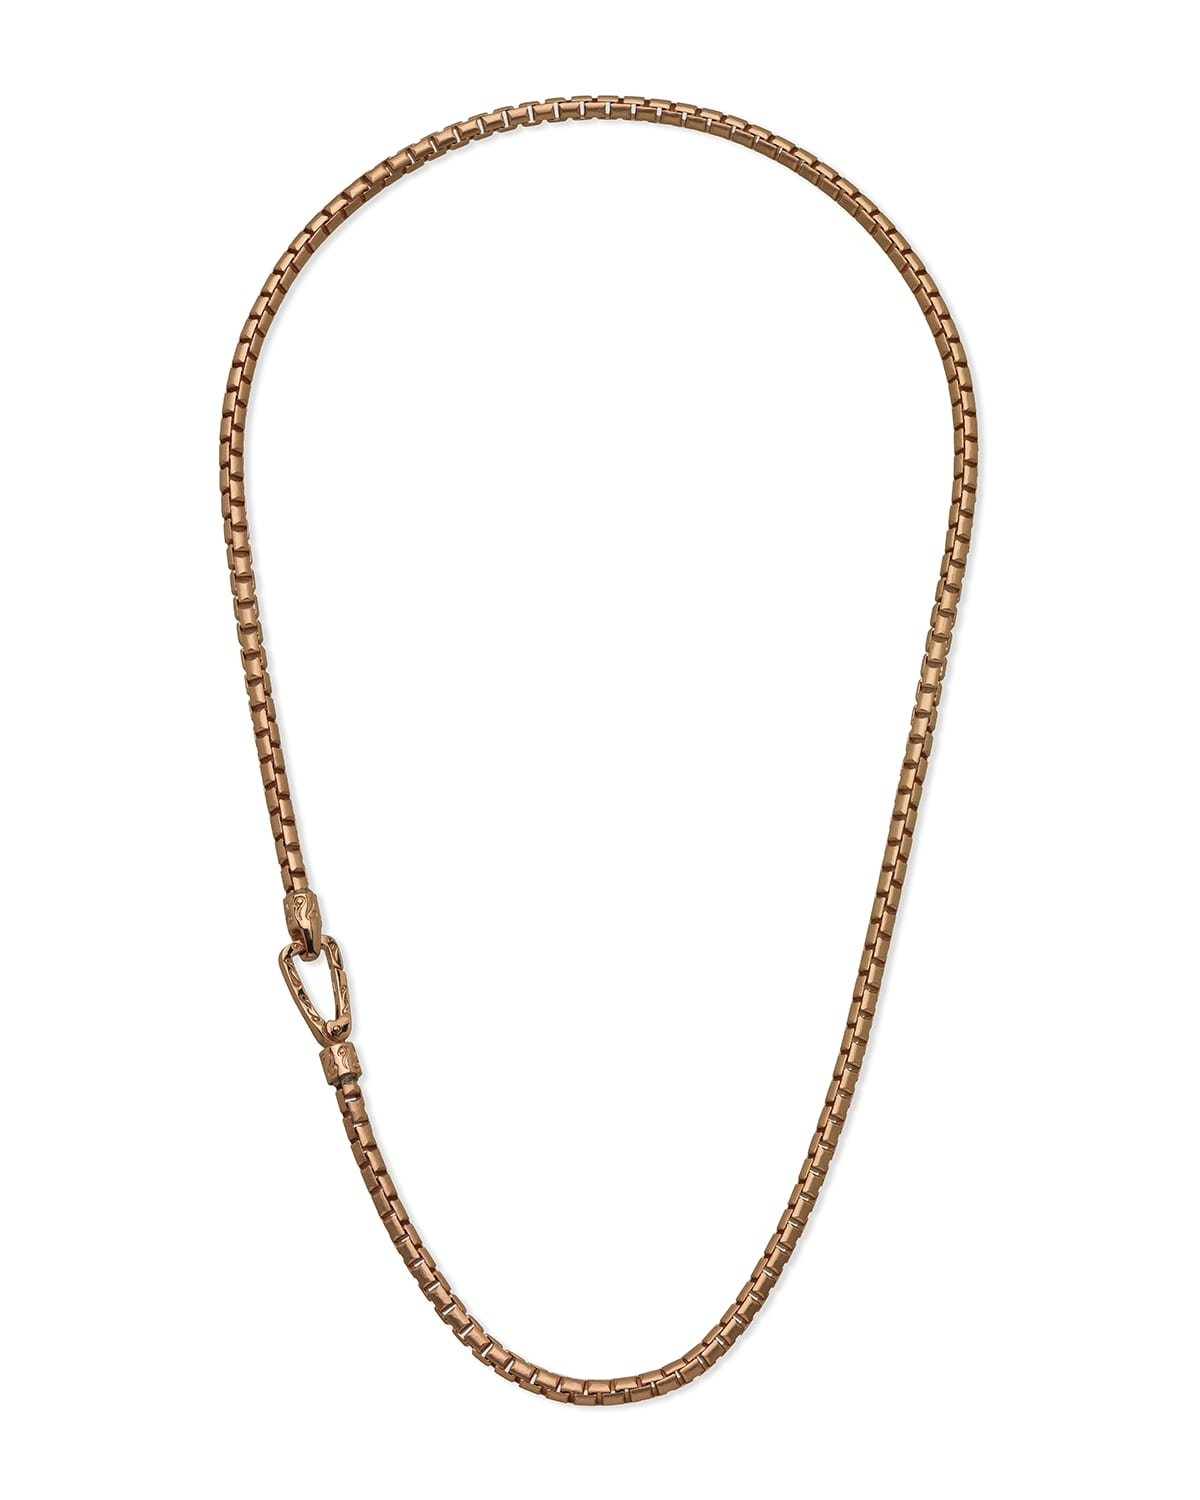 Carved Tubular Rose Gold Plated Silver Necklace with Matte Chain and Polished Clasp